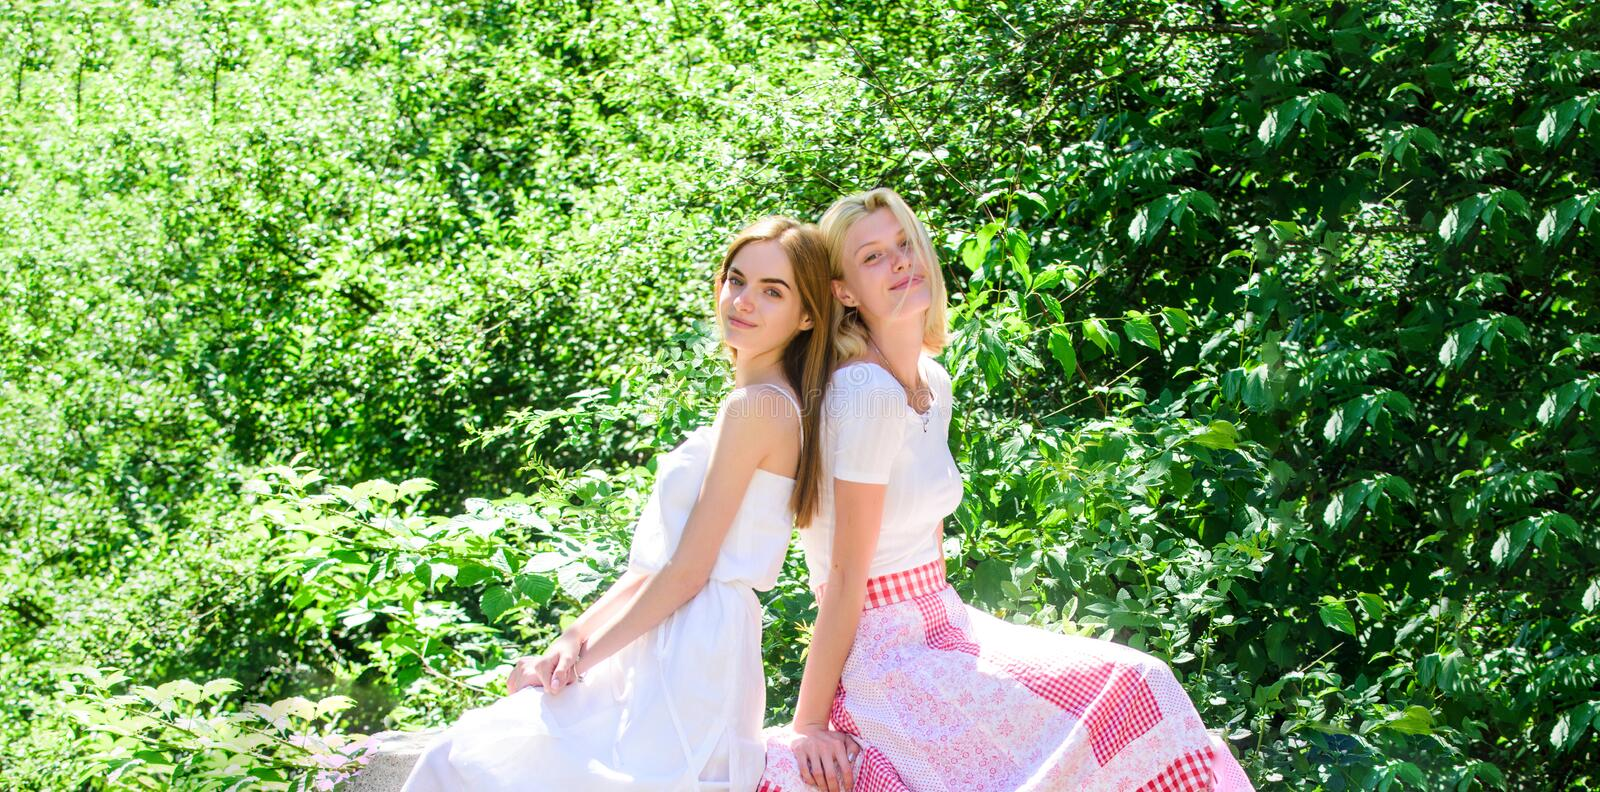 Spring nature lovers. natural beauty. summer fashion. beautiful women in green park. sexy girls relax outdoor. Sisterhood vacation. freshness of healthy skin royalty free stock photos